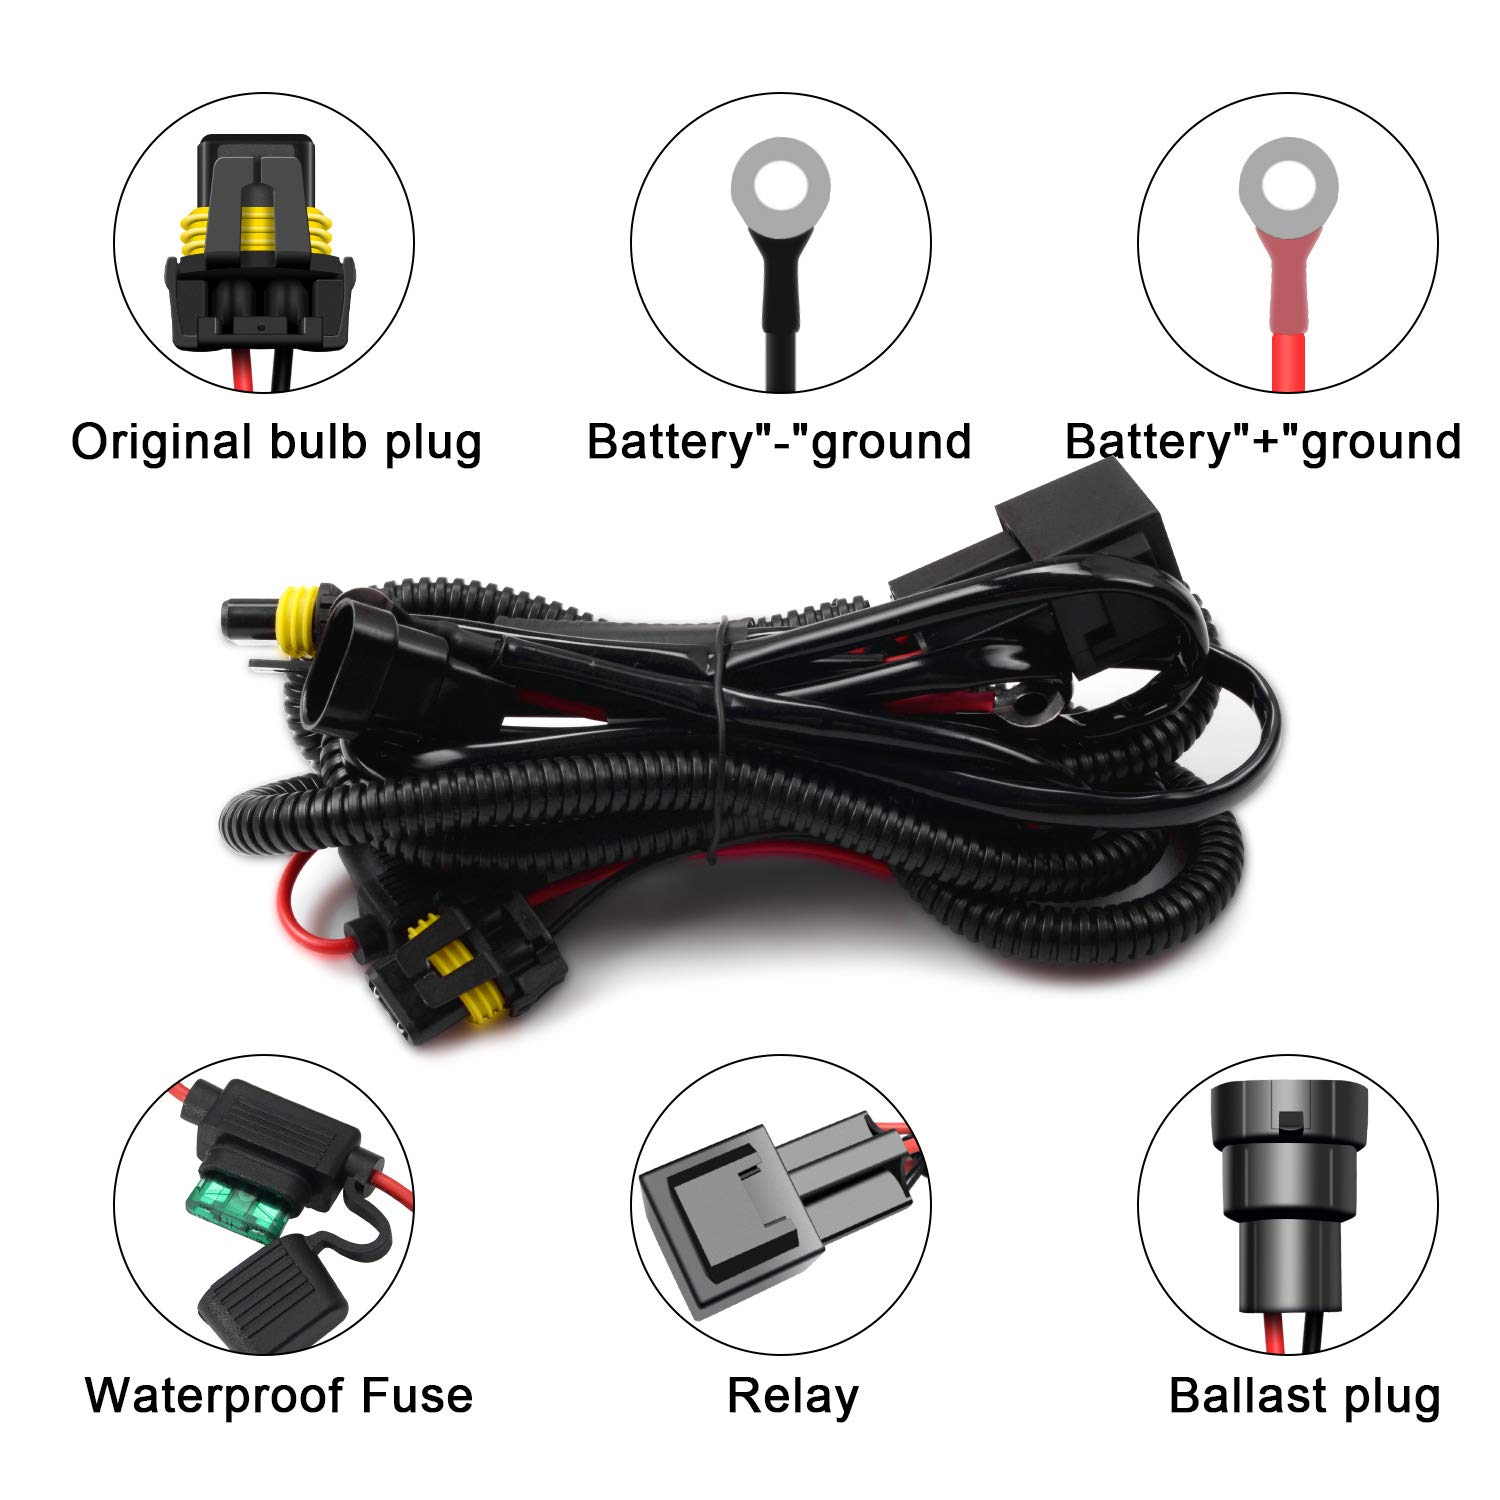 WinPower HID Relay Wiring Harness 12V Original Car Battery Circuit Protection Cable Universal for H1 H3 H4 H7 H8 H9 H11 H13 HB3 HB4 HIR2 Xenon Conversion Kit Upgrade Refit